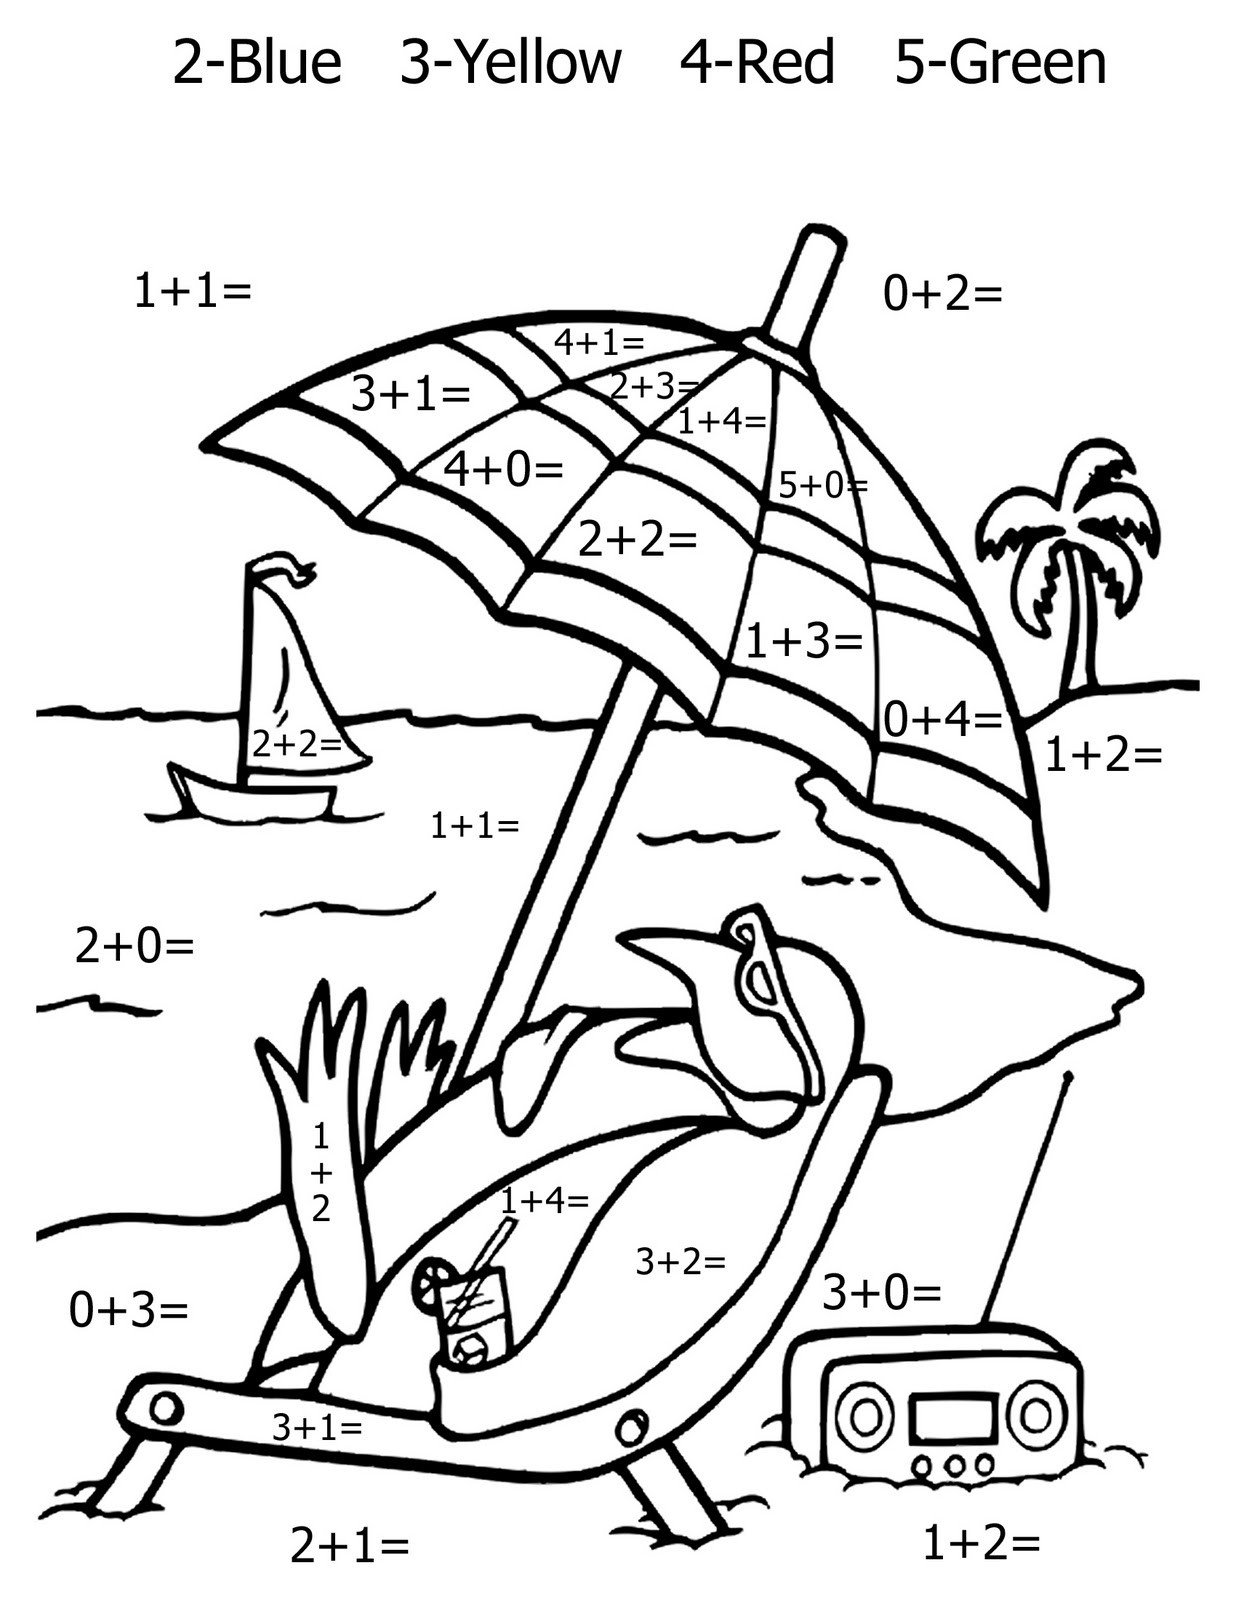 Coloring Addition Worksheet Math Coloring Pages Best Coloring Pages for Kids